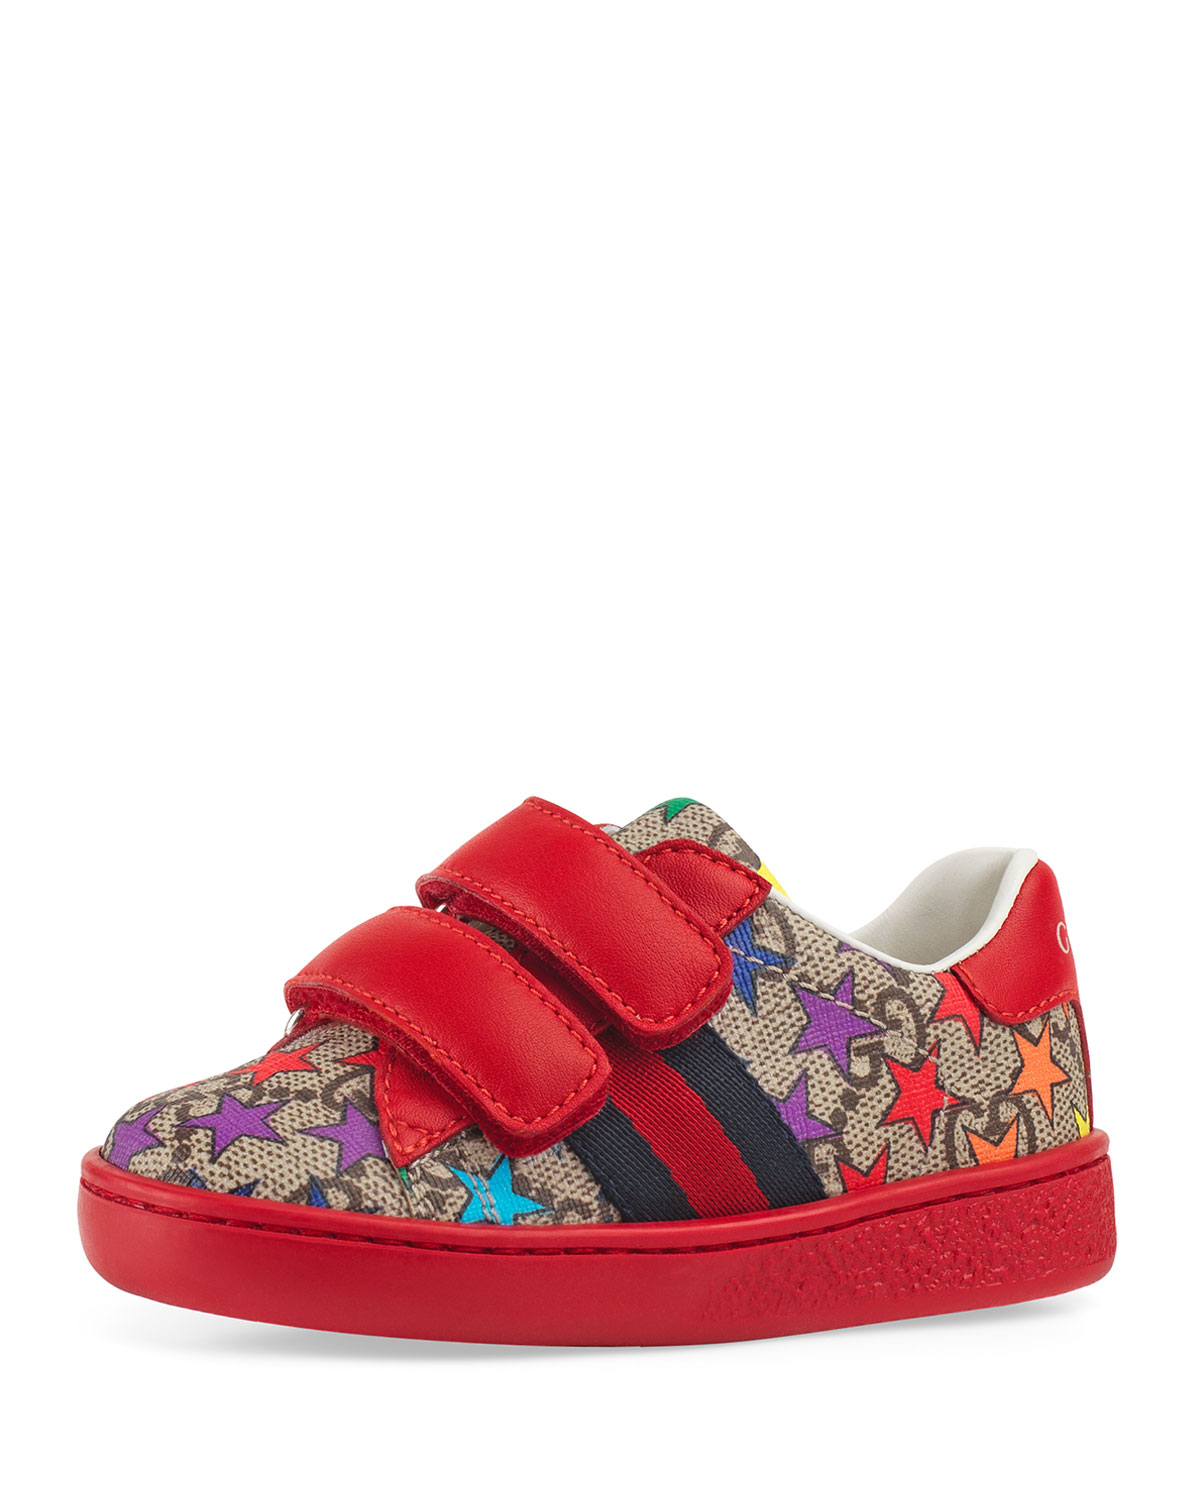 9501305709f Gucci New Ace GG Supreme Rainbow Star-Print Sneakers